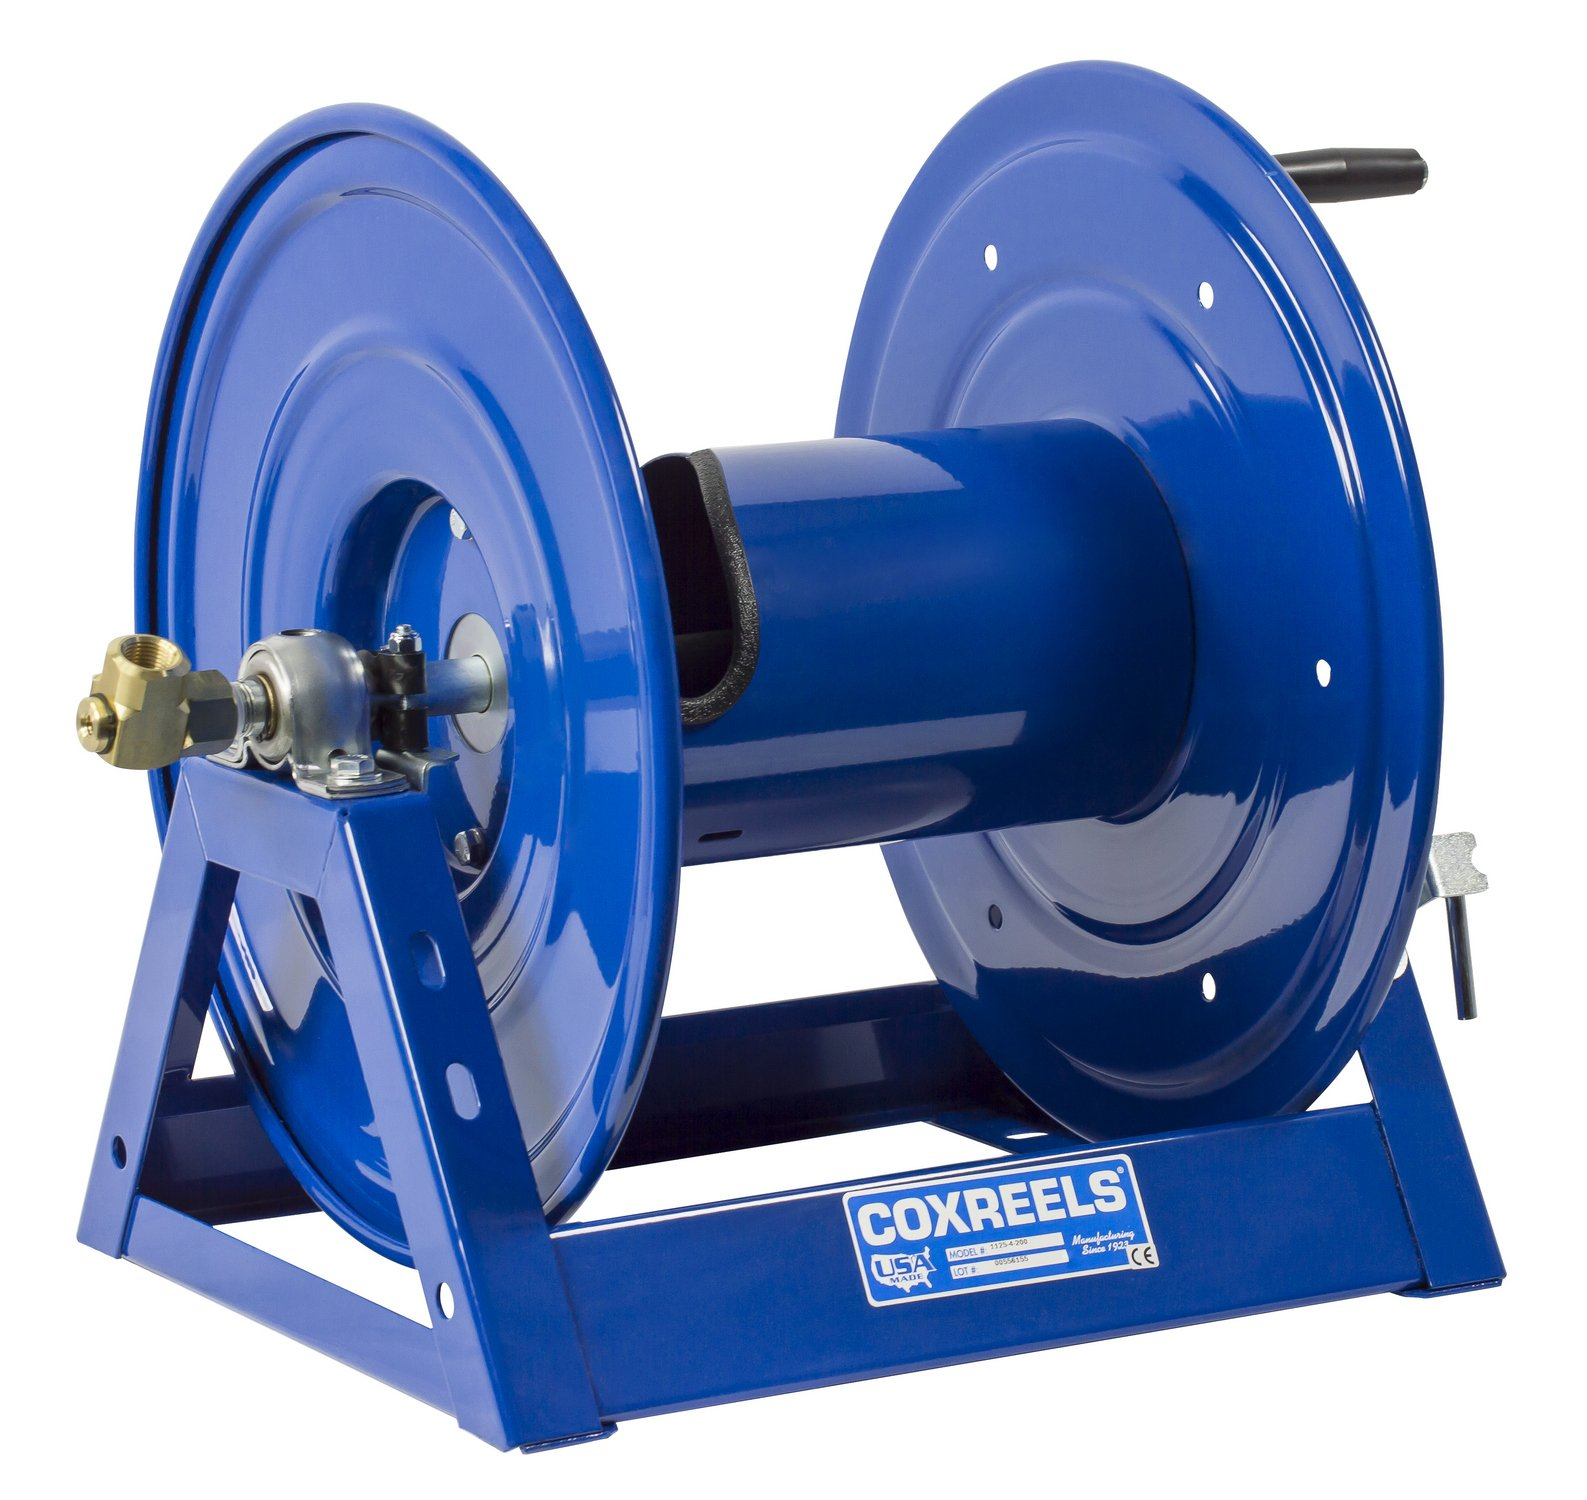 Coxreels 1125-4-100 Steel Hand Crank Hose Reel, 1/2'' Hose I.D., 100' Hose Capacity, 3,000 PSI, without Hose, Made in USA by Coxreels (Image #2)